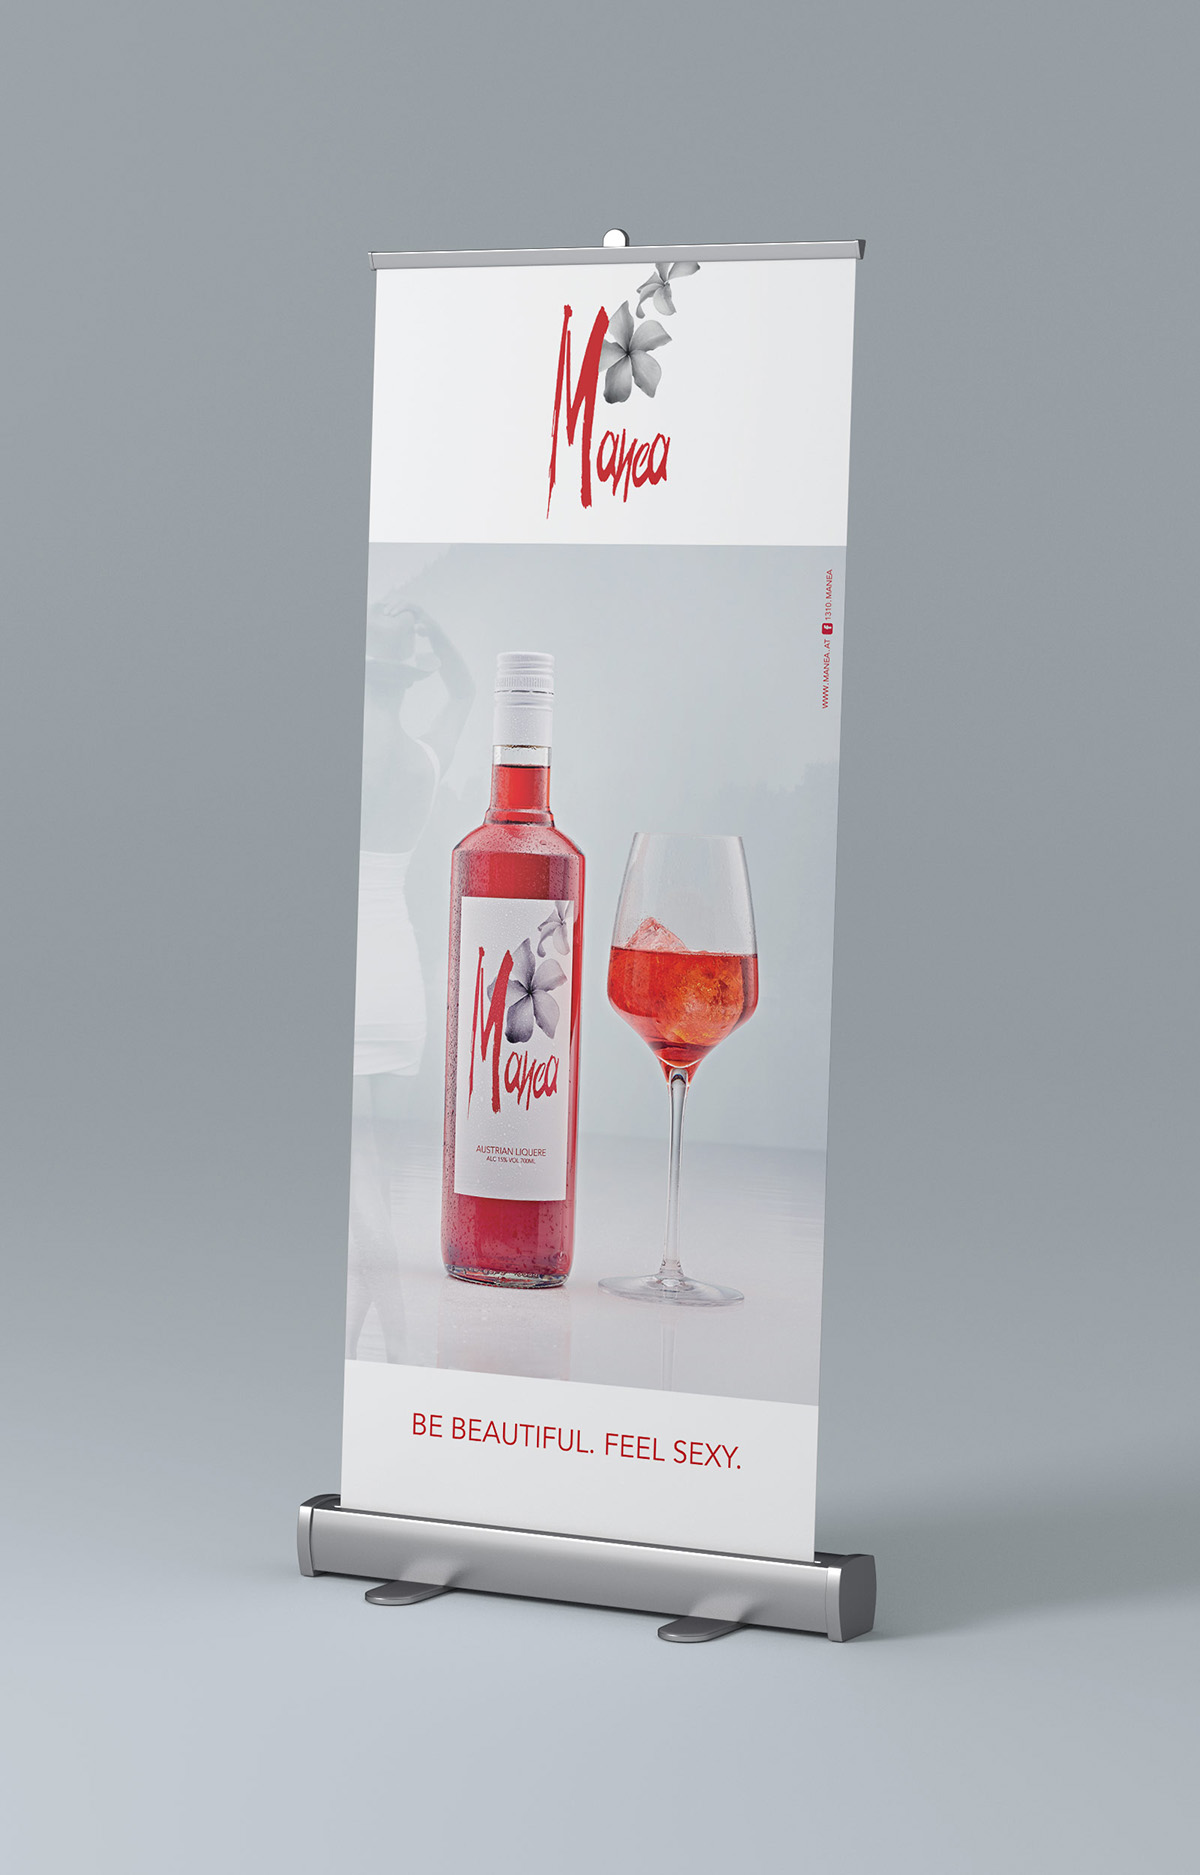 Mockup_Rollup_side_85x200_MANEA03